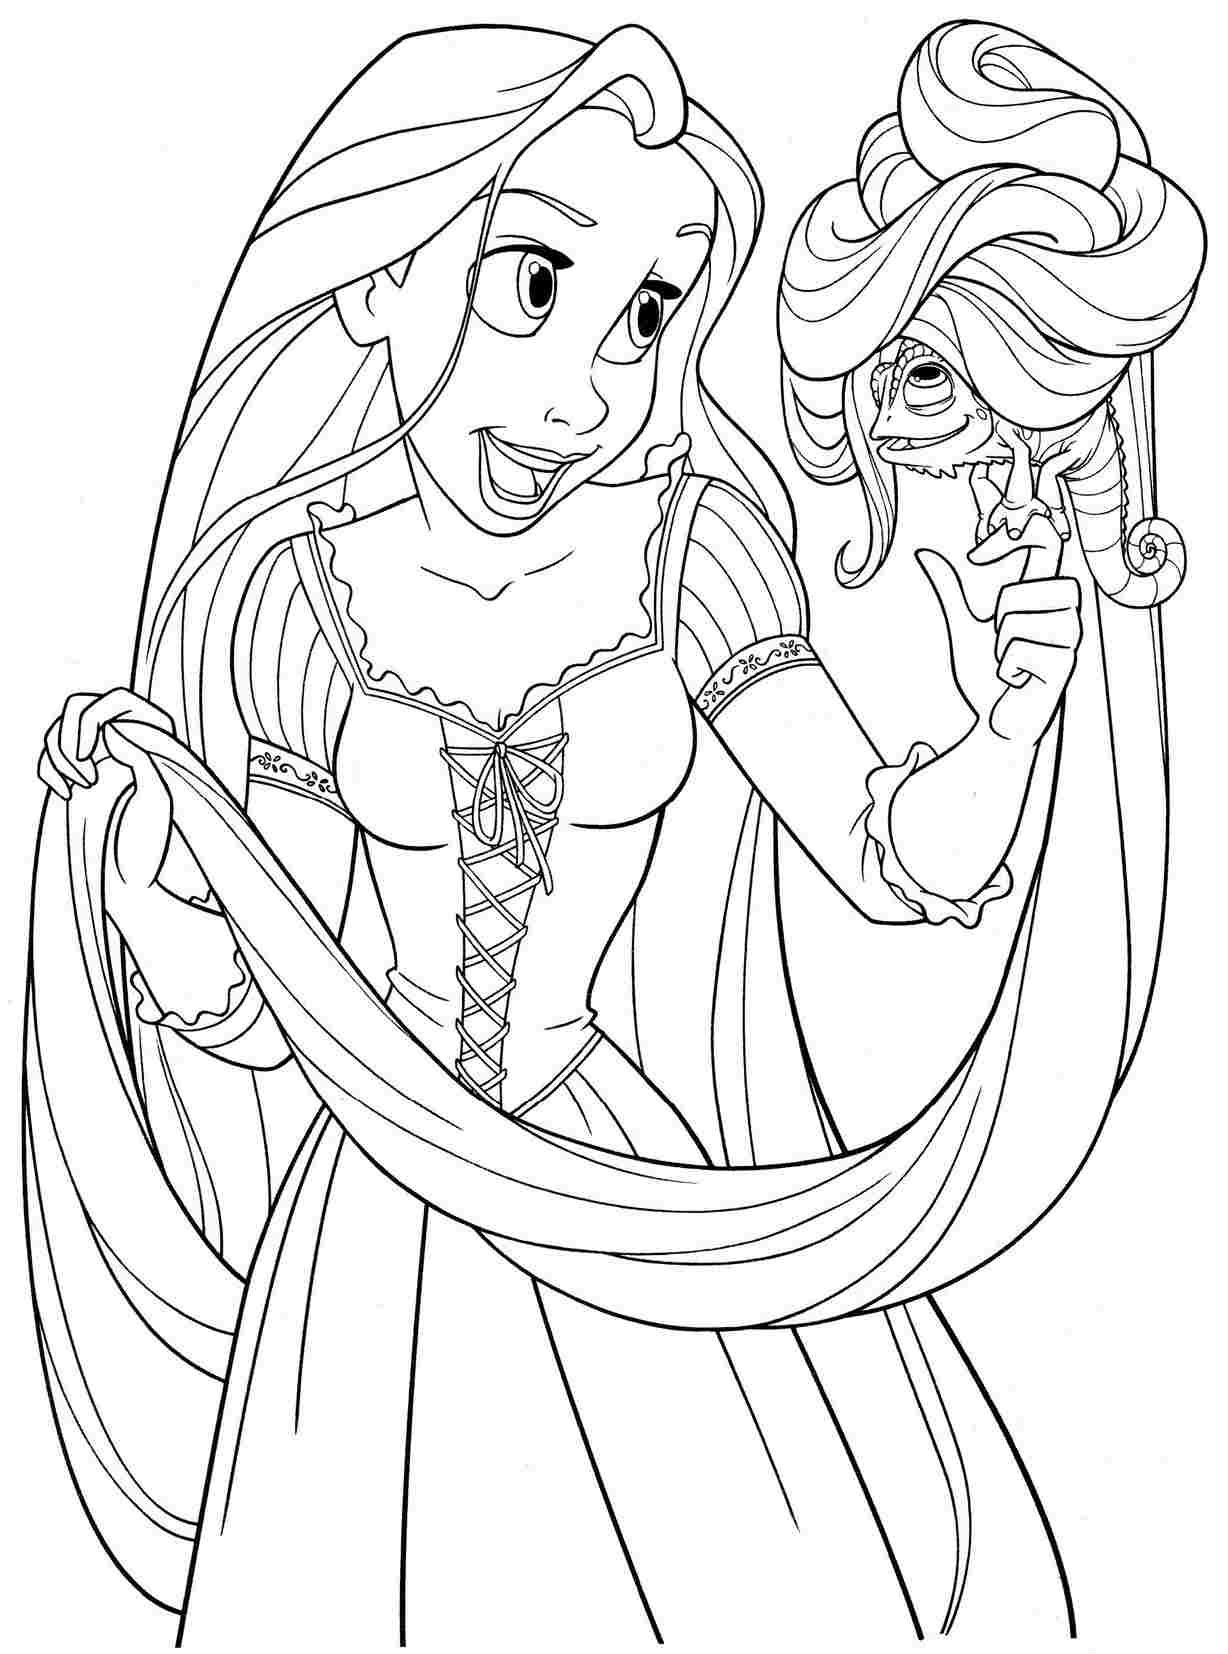 printable free colouring pages disney princess rapunzel for kids boys